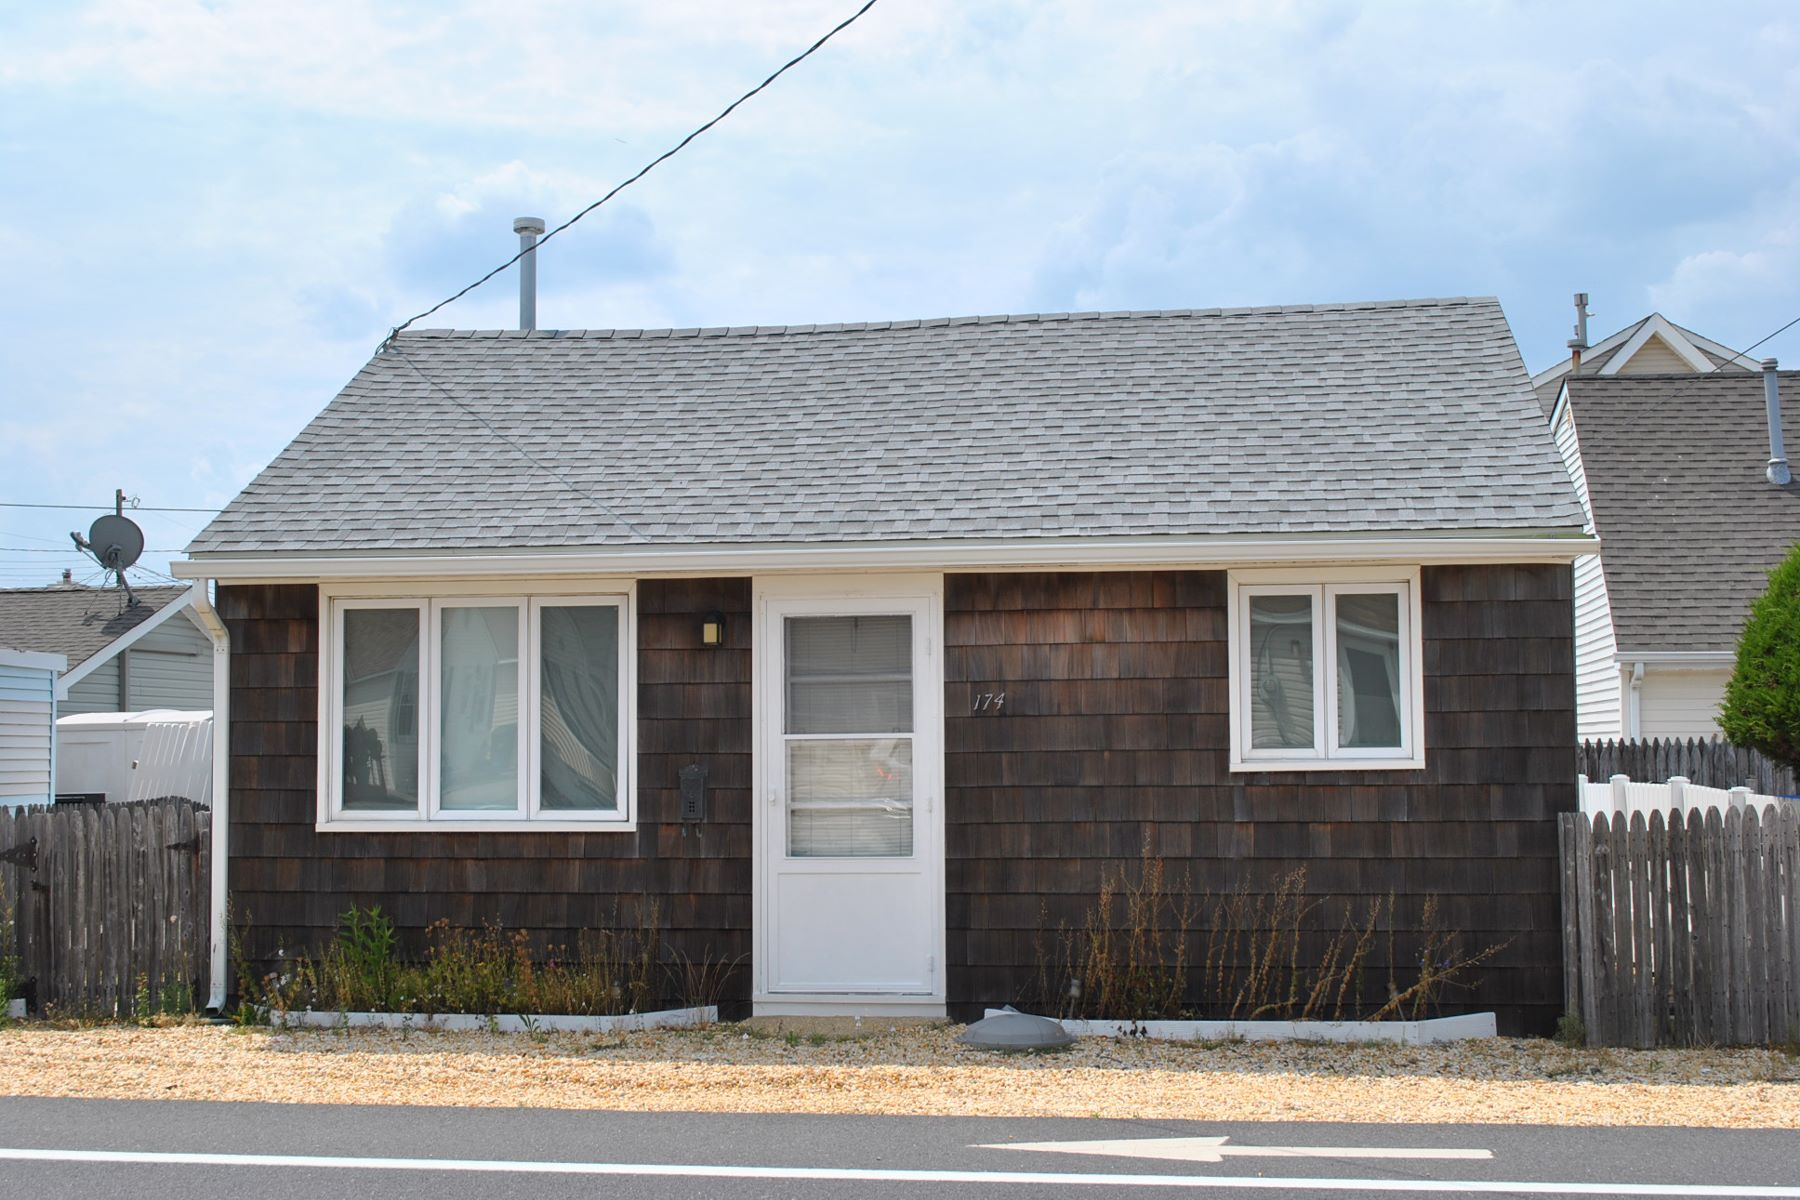 Single Family Home for Sale at South Seaside Park Shore Cottage 174 SE Central Avenue Seaside Heights, New Jersey 08752 United States